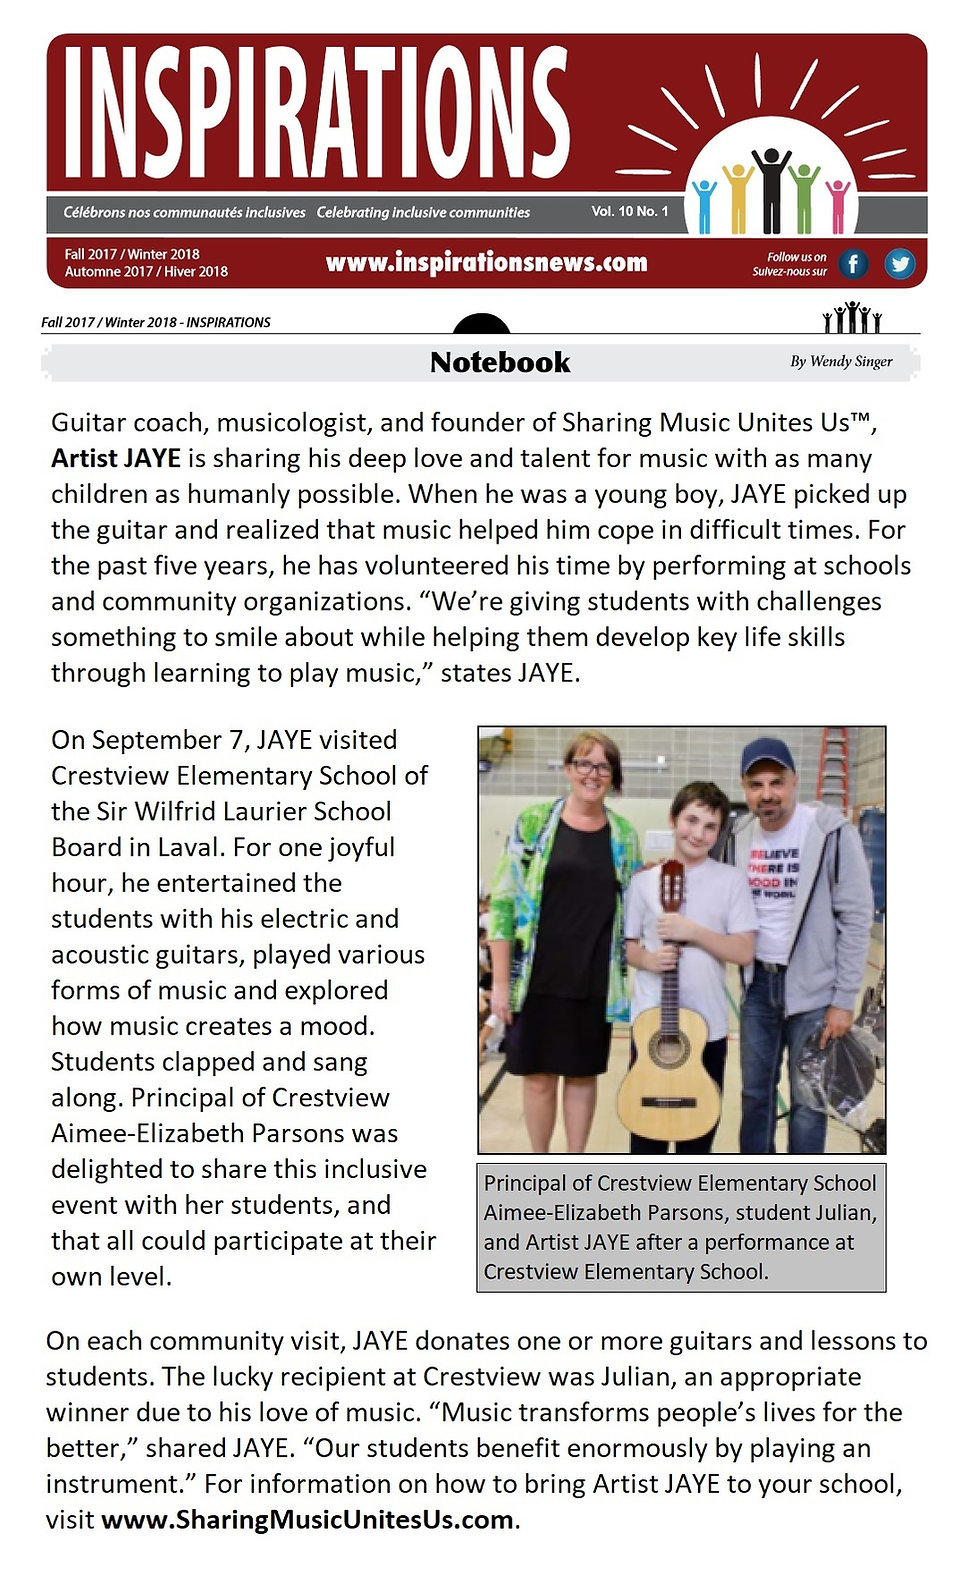 Inspirations Magazine, SWLSB, Sir Wilfrid Laurier School Board, Guitar Teacher, Artist JAYE's Sharing Music Unites Us™ cause